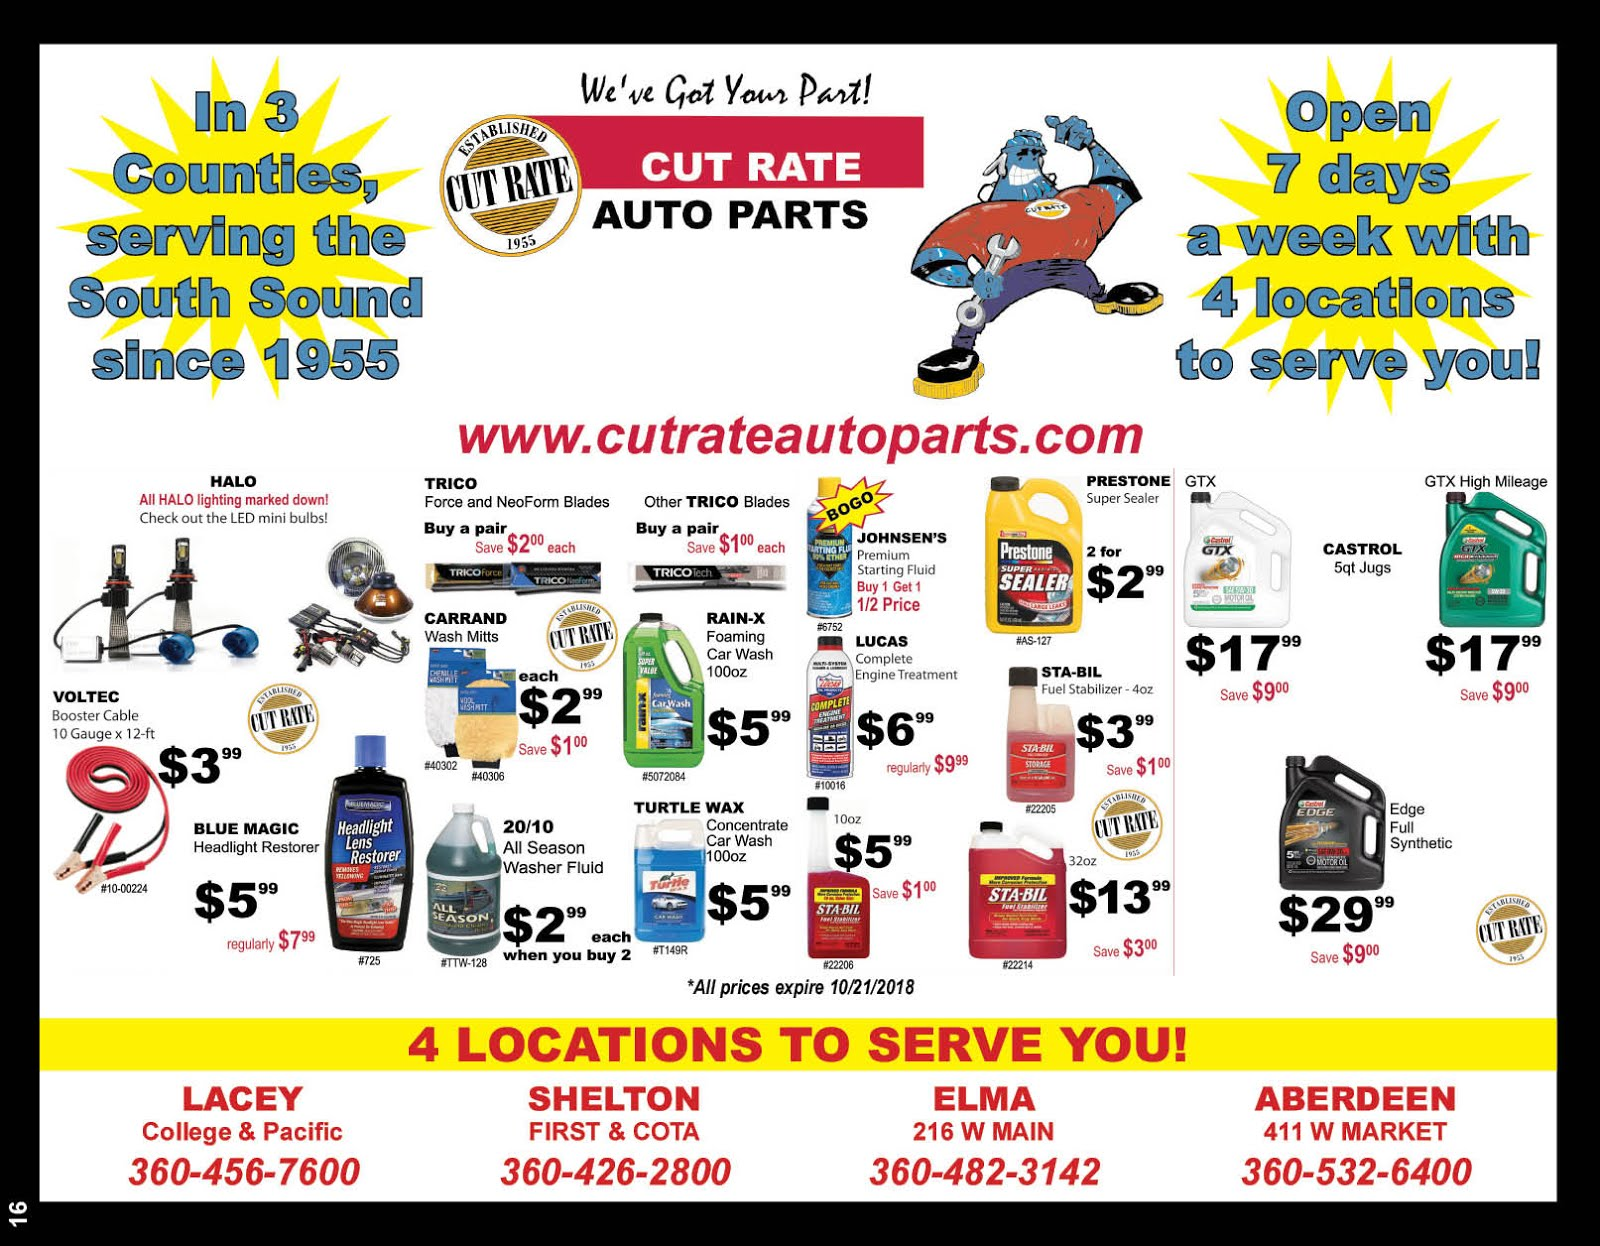 Cut Rate Auto Parts 63rd Anniversary sale Going On Now!!